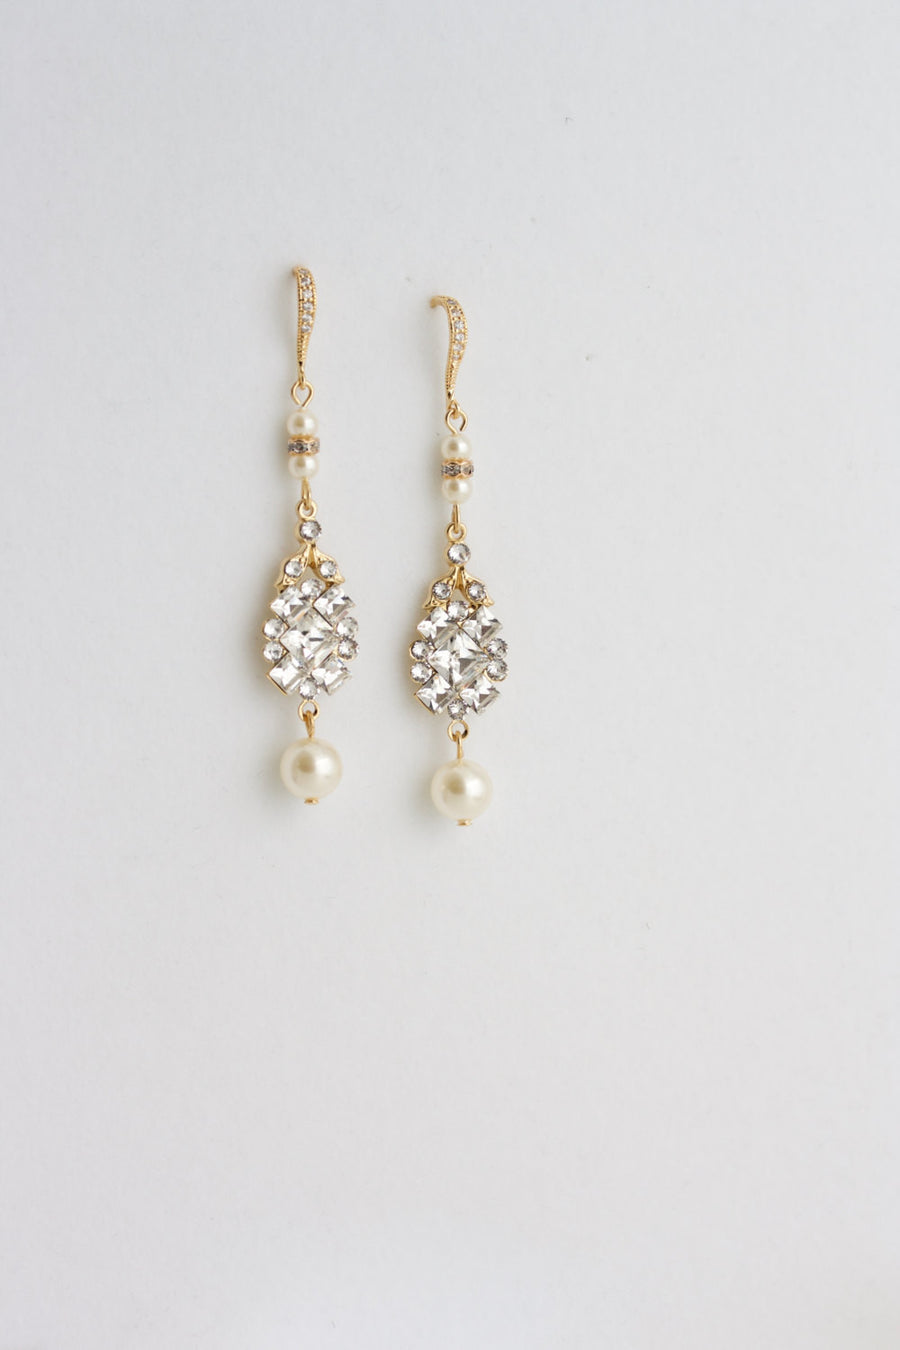 ANNA WEDDING EARRINGS - Lulu Splendor